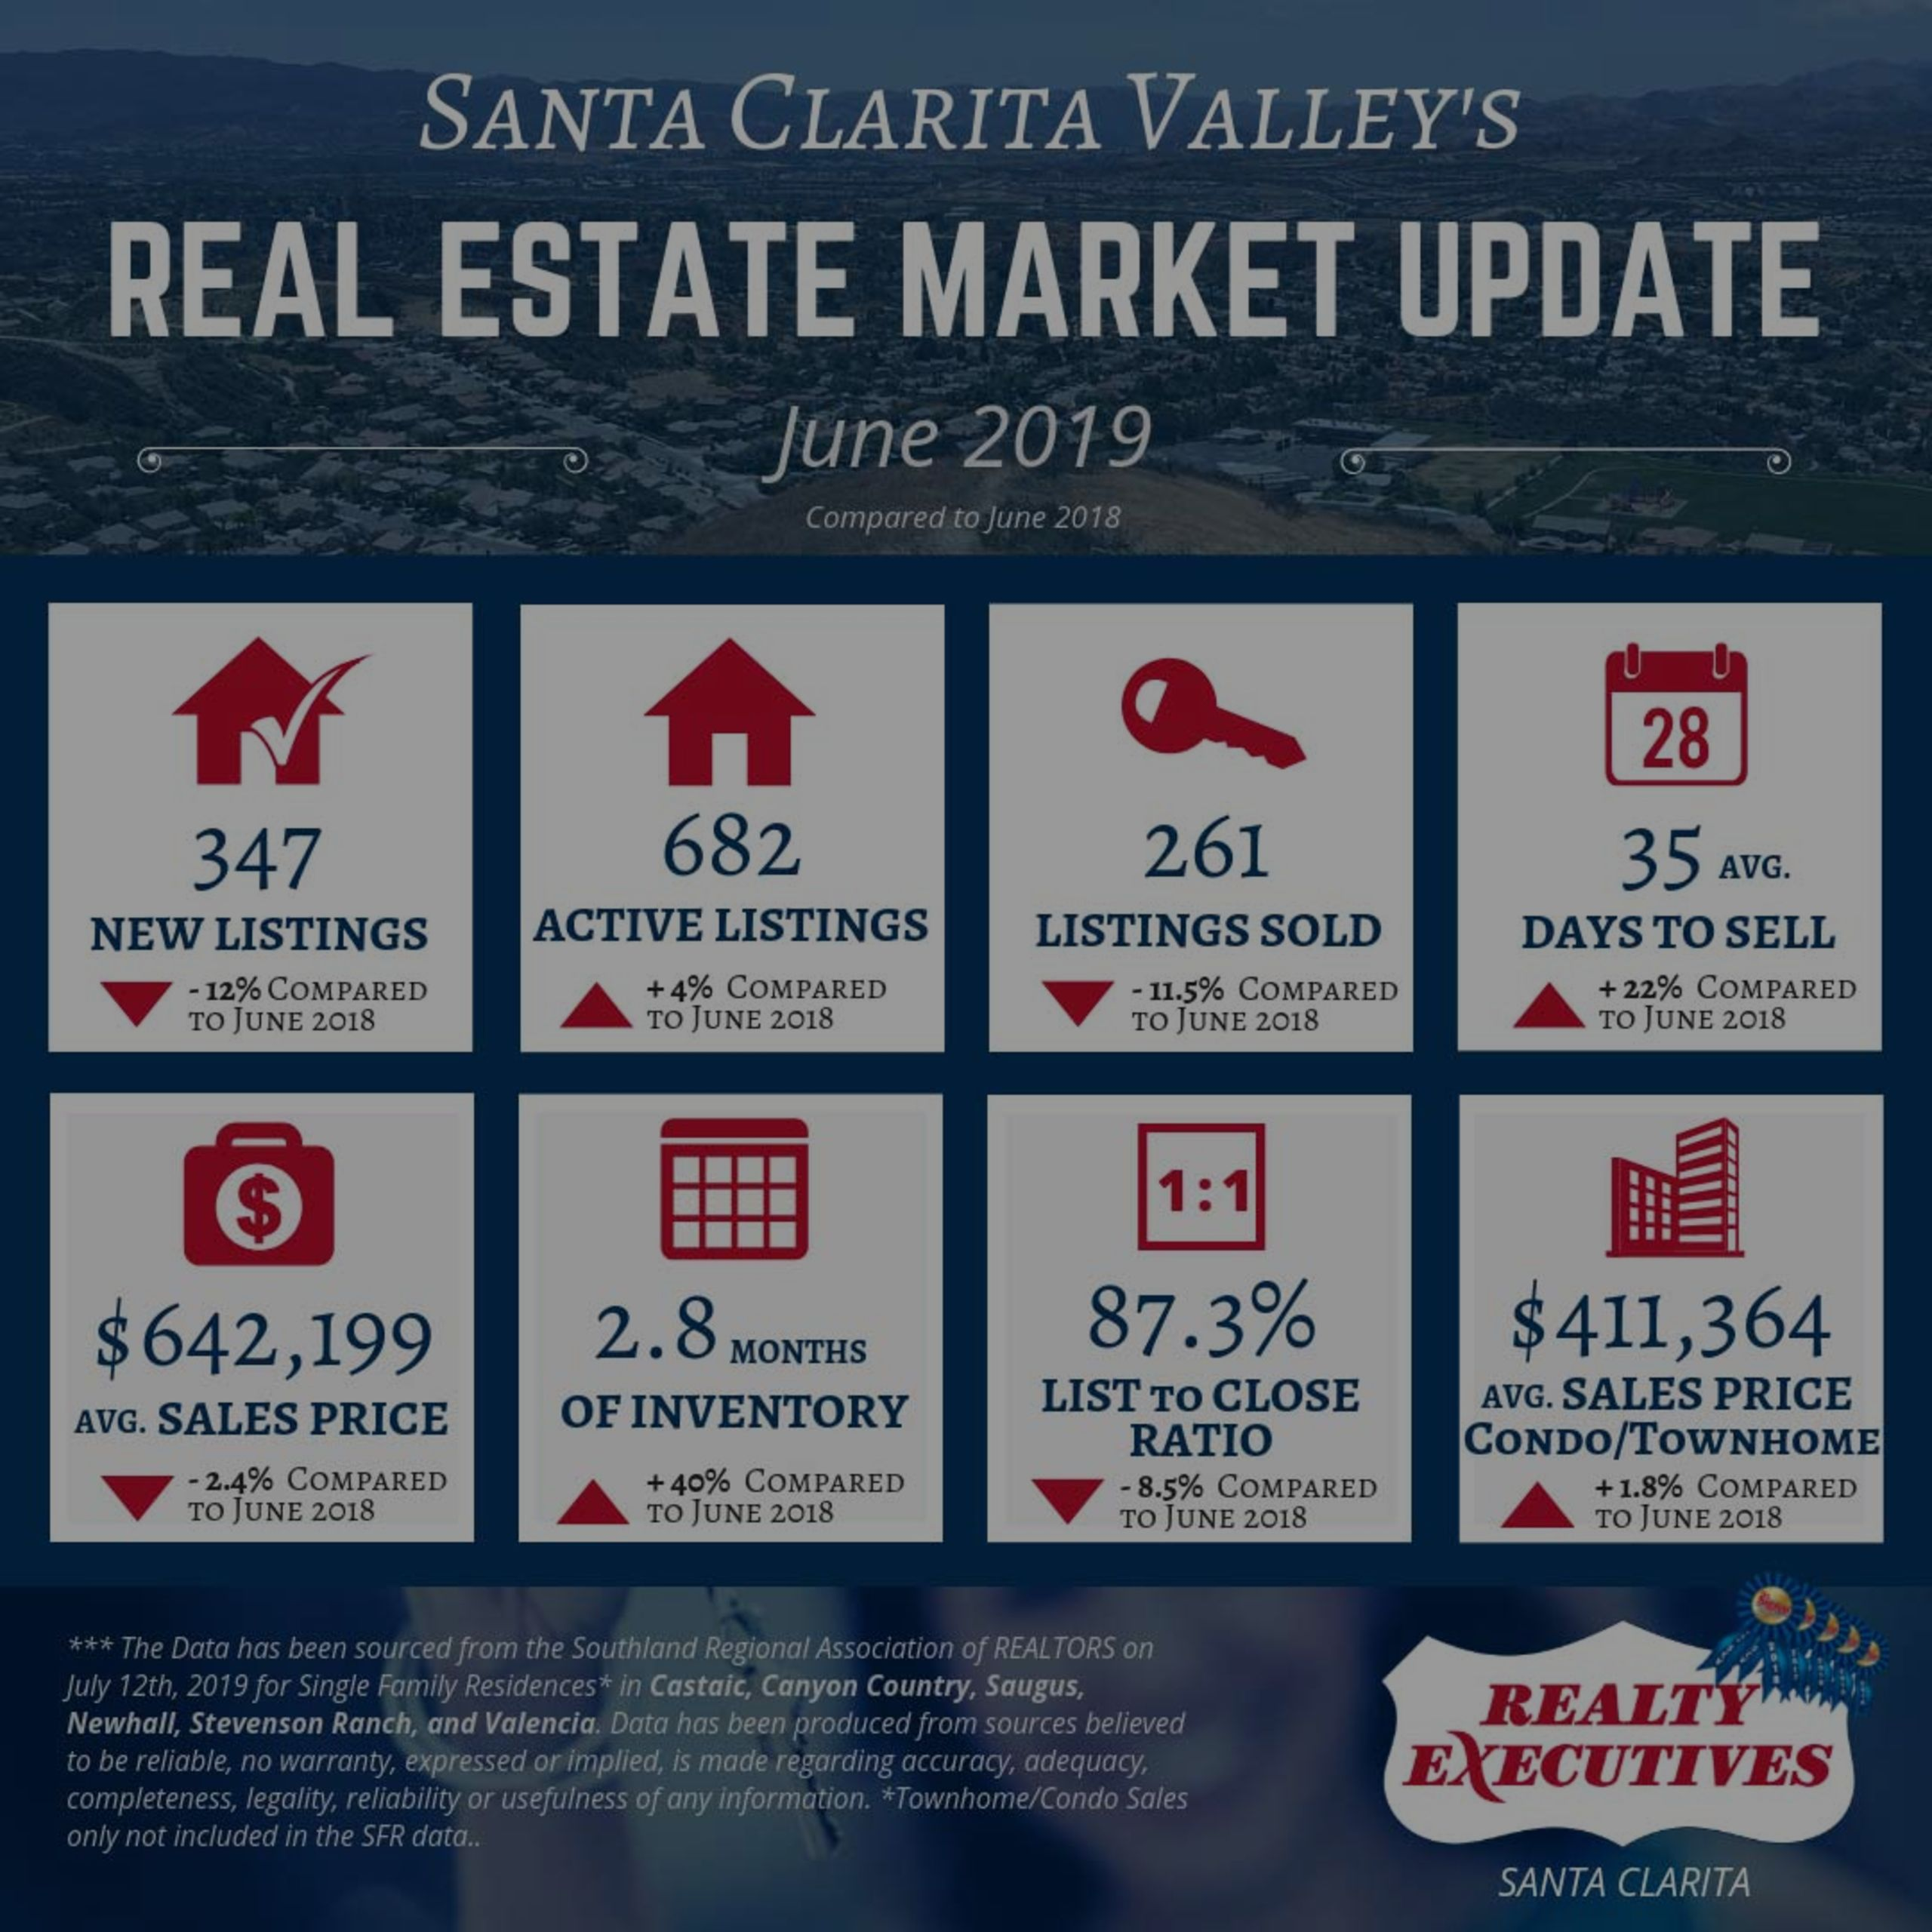 June 2019: Santa Clarita Valley Real Estate Market Update